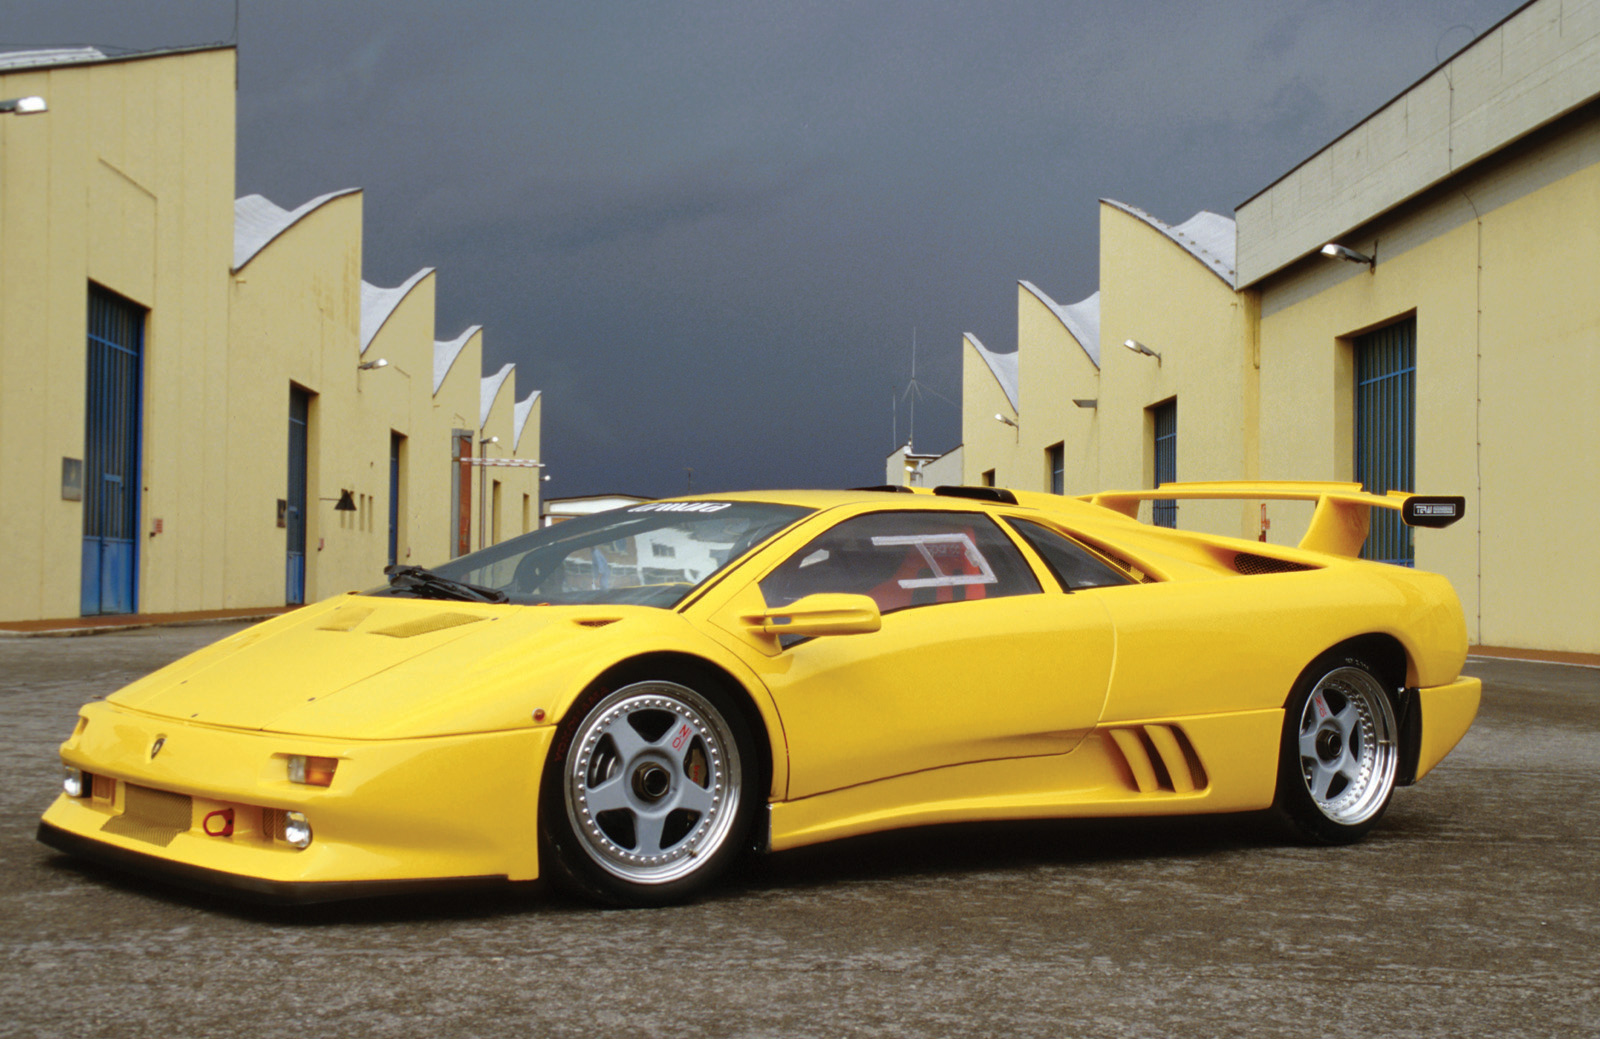 Amazing Lamborghini Diablo Pictures & Backgrounds